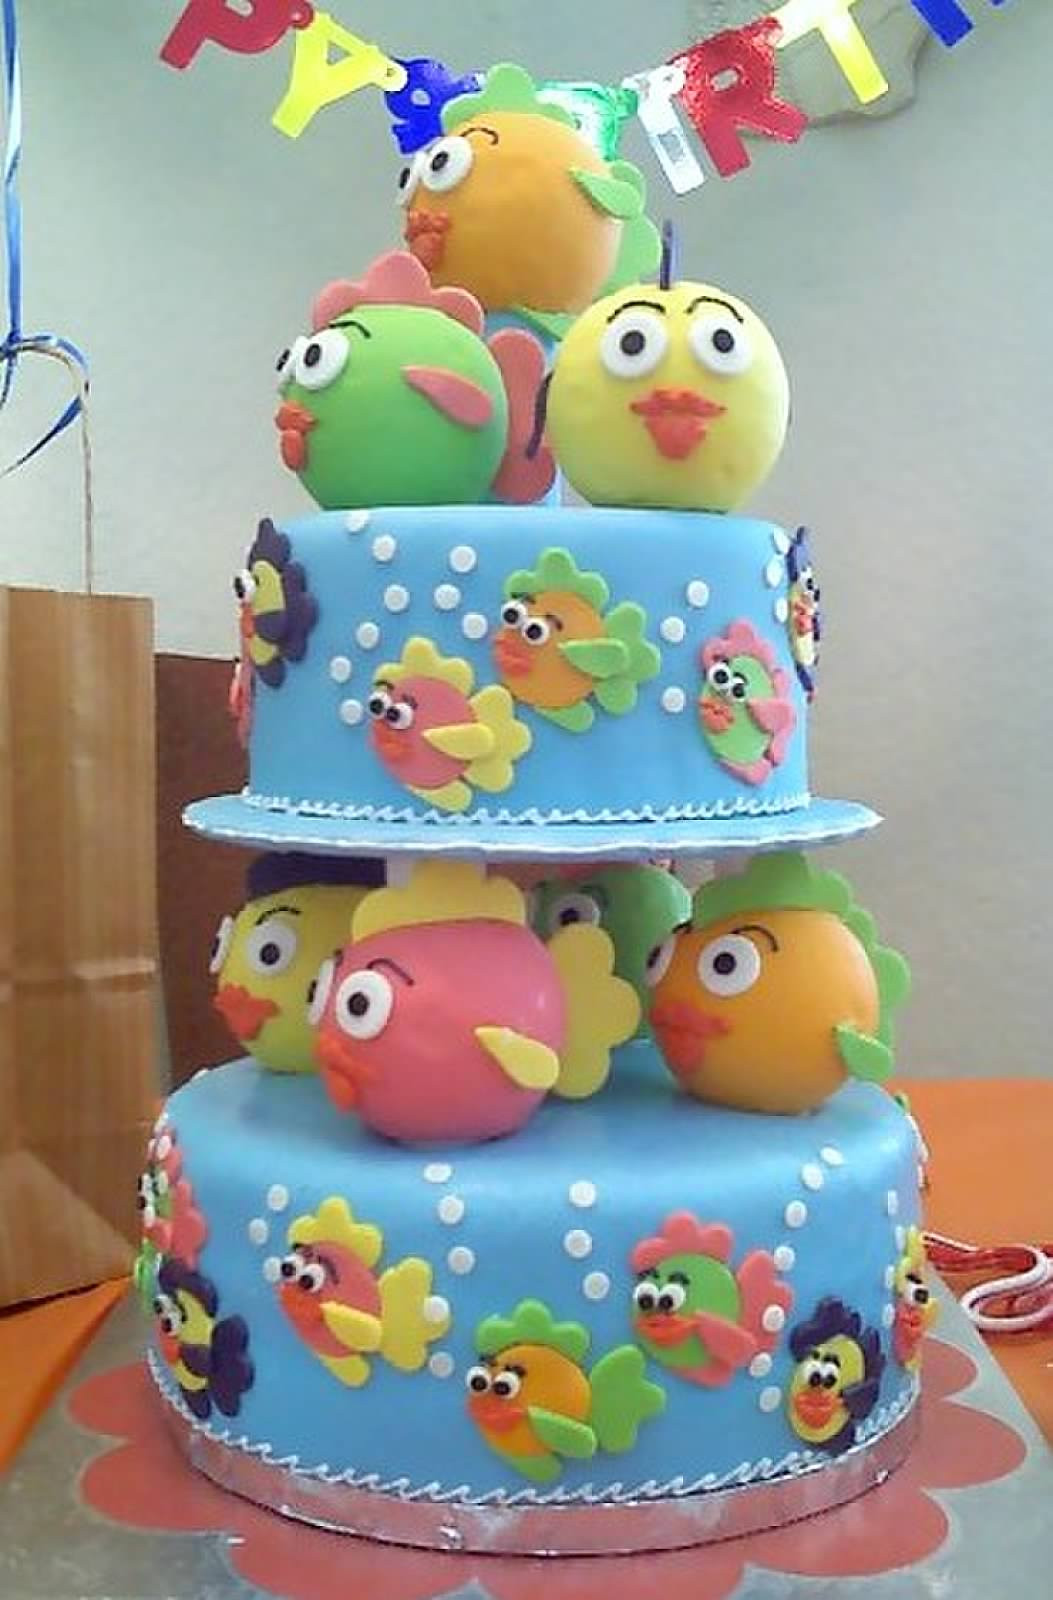 Birthday Cake For 1 Year Old  File Birthday cake for one year old Wikimedia mons